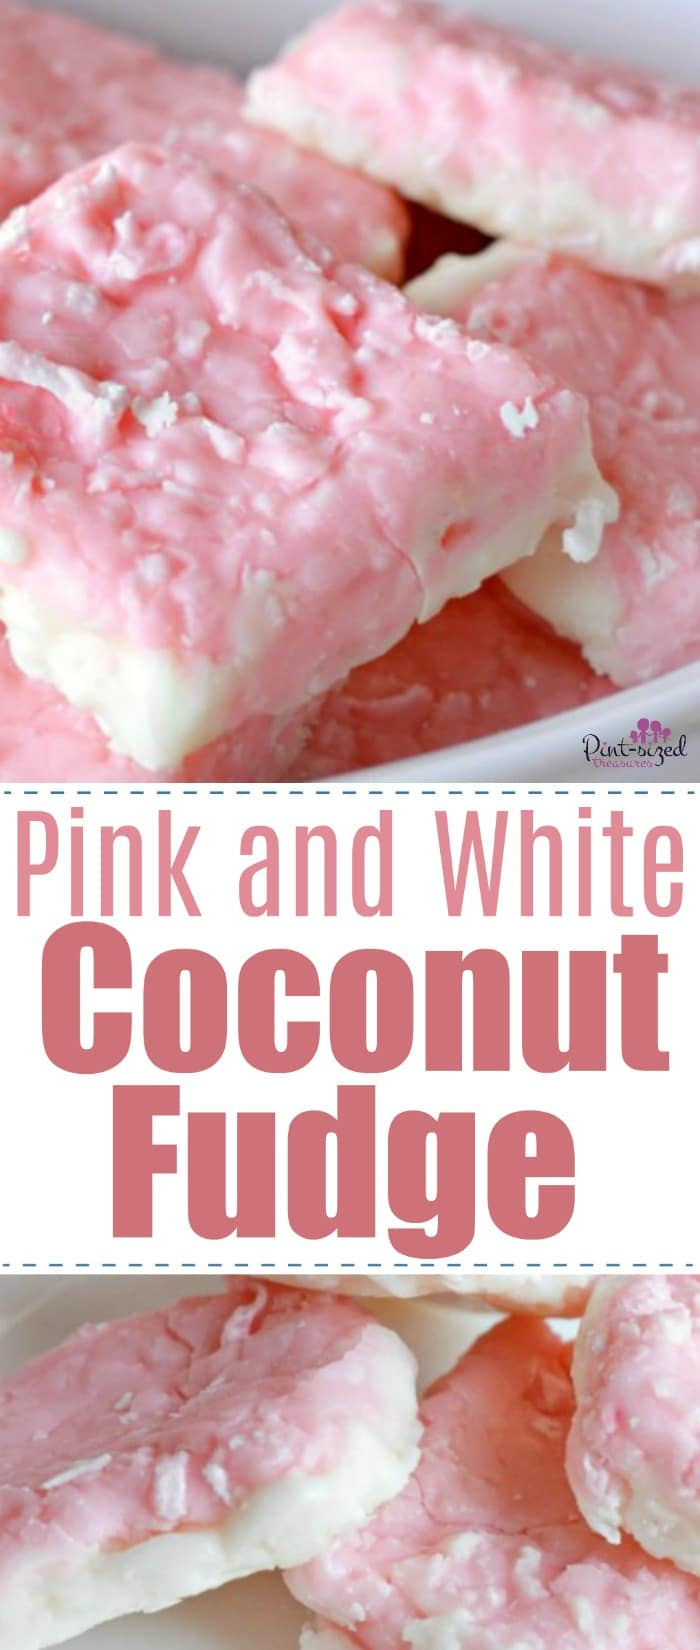 Pink and white coconut fudge is the perfect fudge fix for spring! Enjoy the prettiest fudge on earth! #easyfudgerecipe #springtreats #coconutfudge #pinkandwhitefudge #pinkandwhitetreats #pinktreats #coconutfudge #coconuttreats #easydessert #easytreat #coconutfudgerecipe